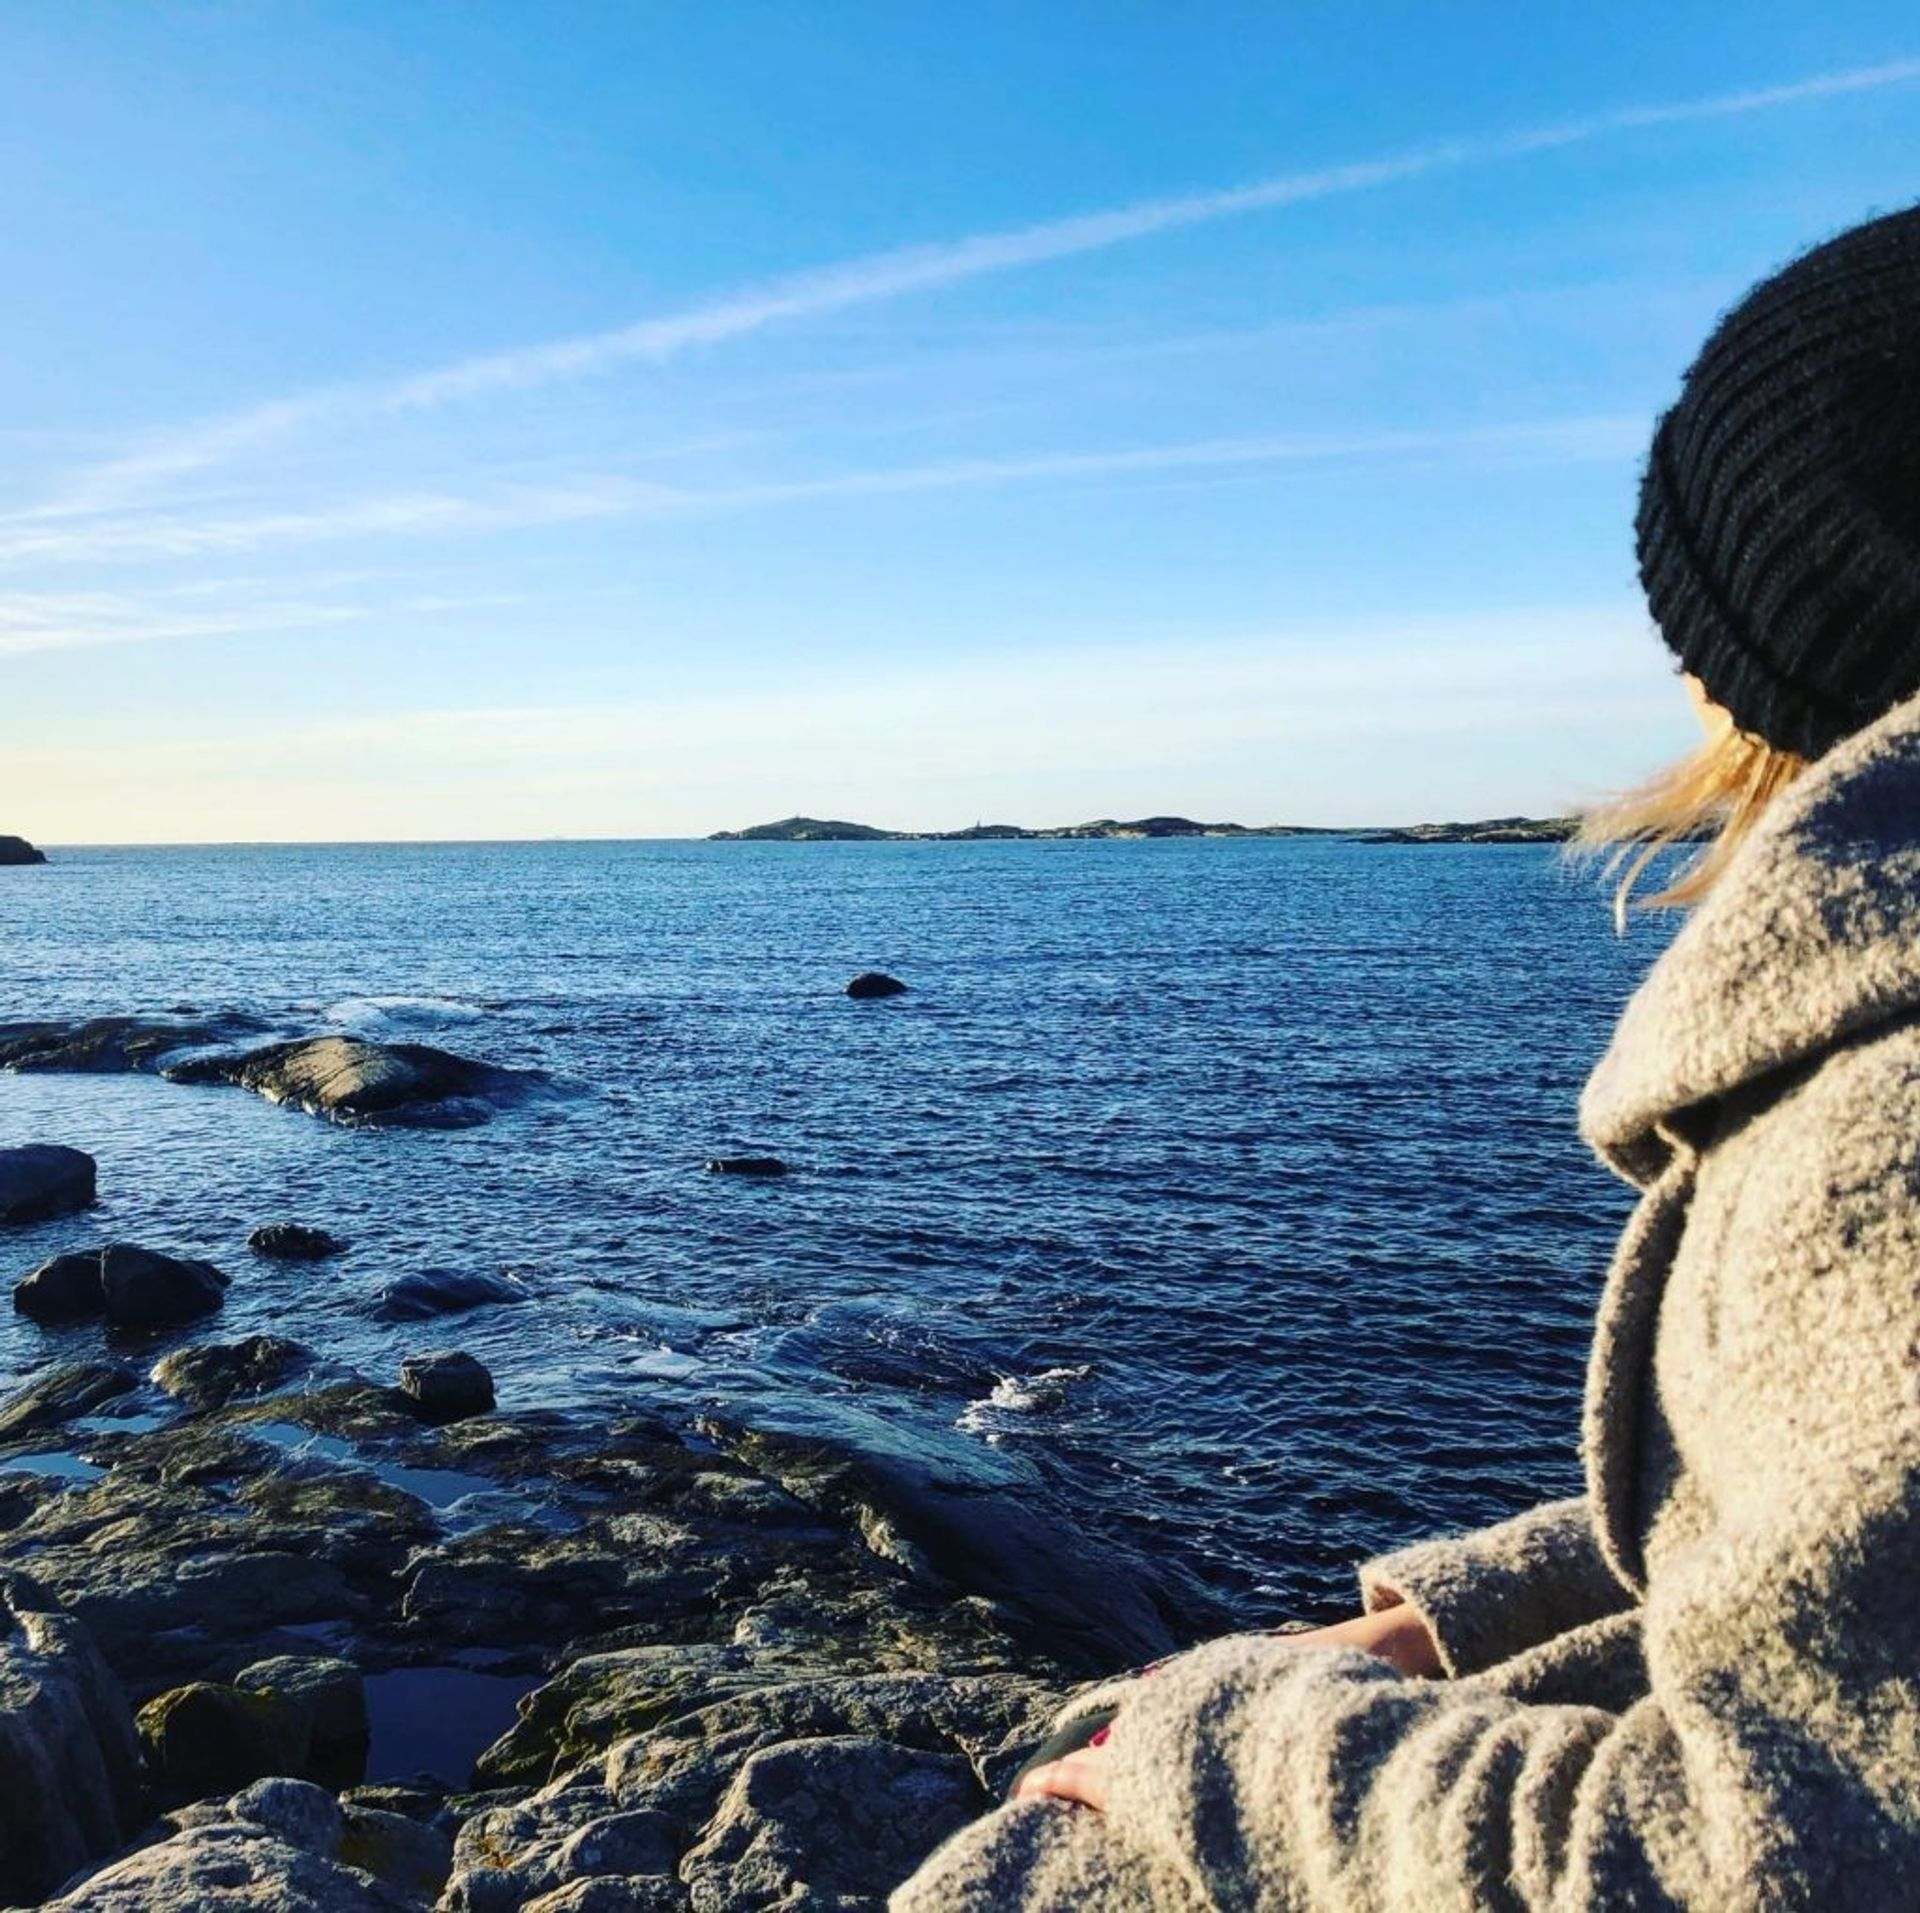 Sara, dressed in a winter coat and hat, sits on a rock by the sea staring out at the view.